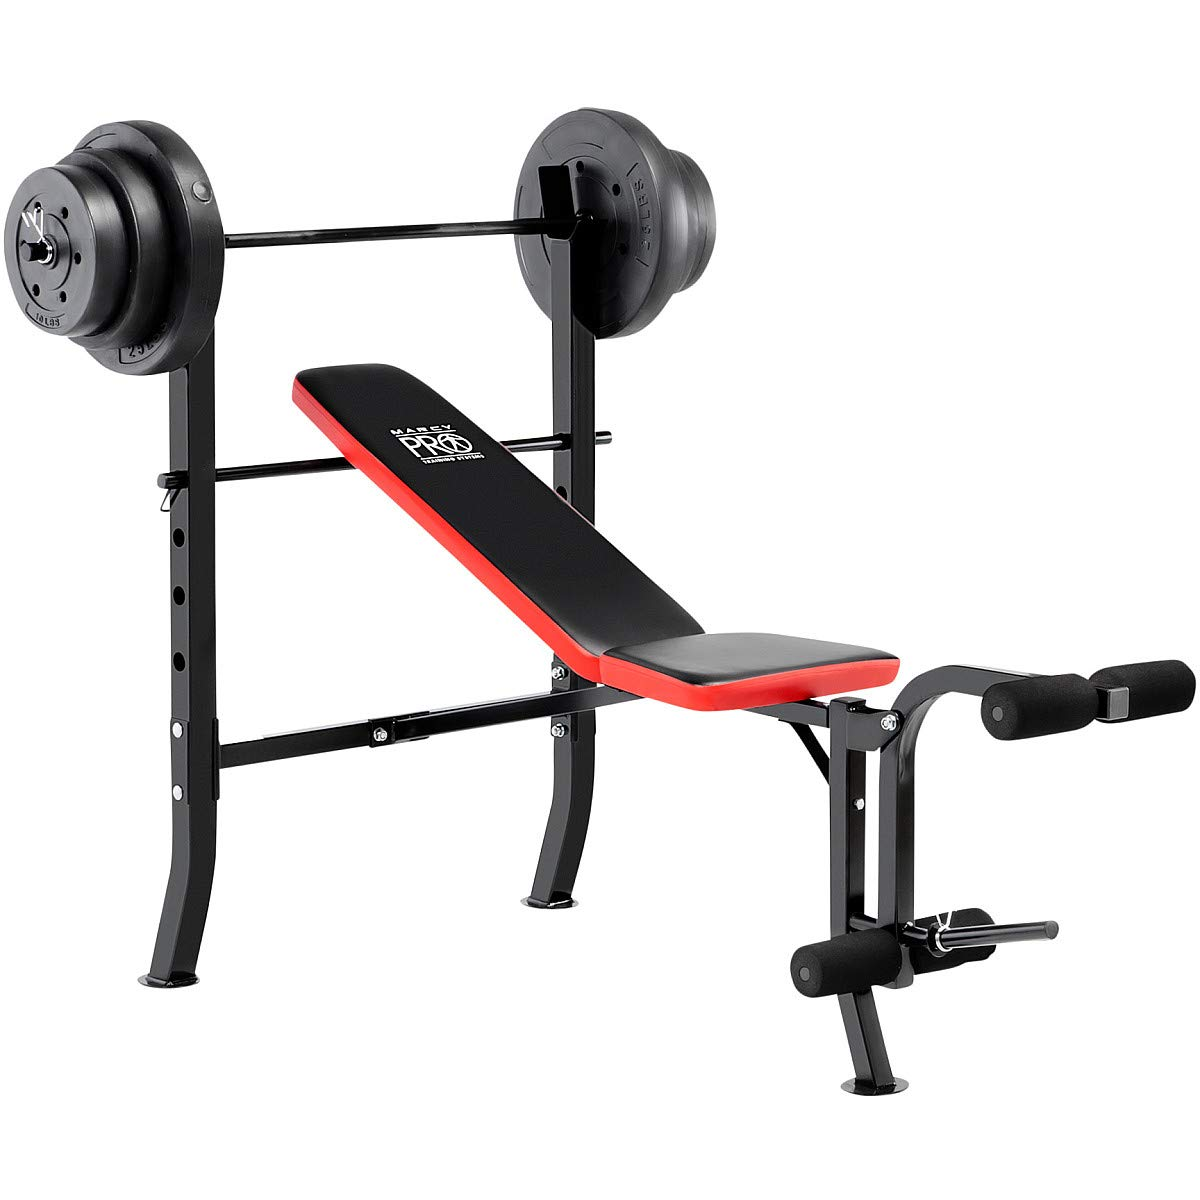 Marcy Standard Bench & 100 LB Weight Set by Marcy